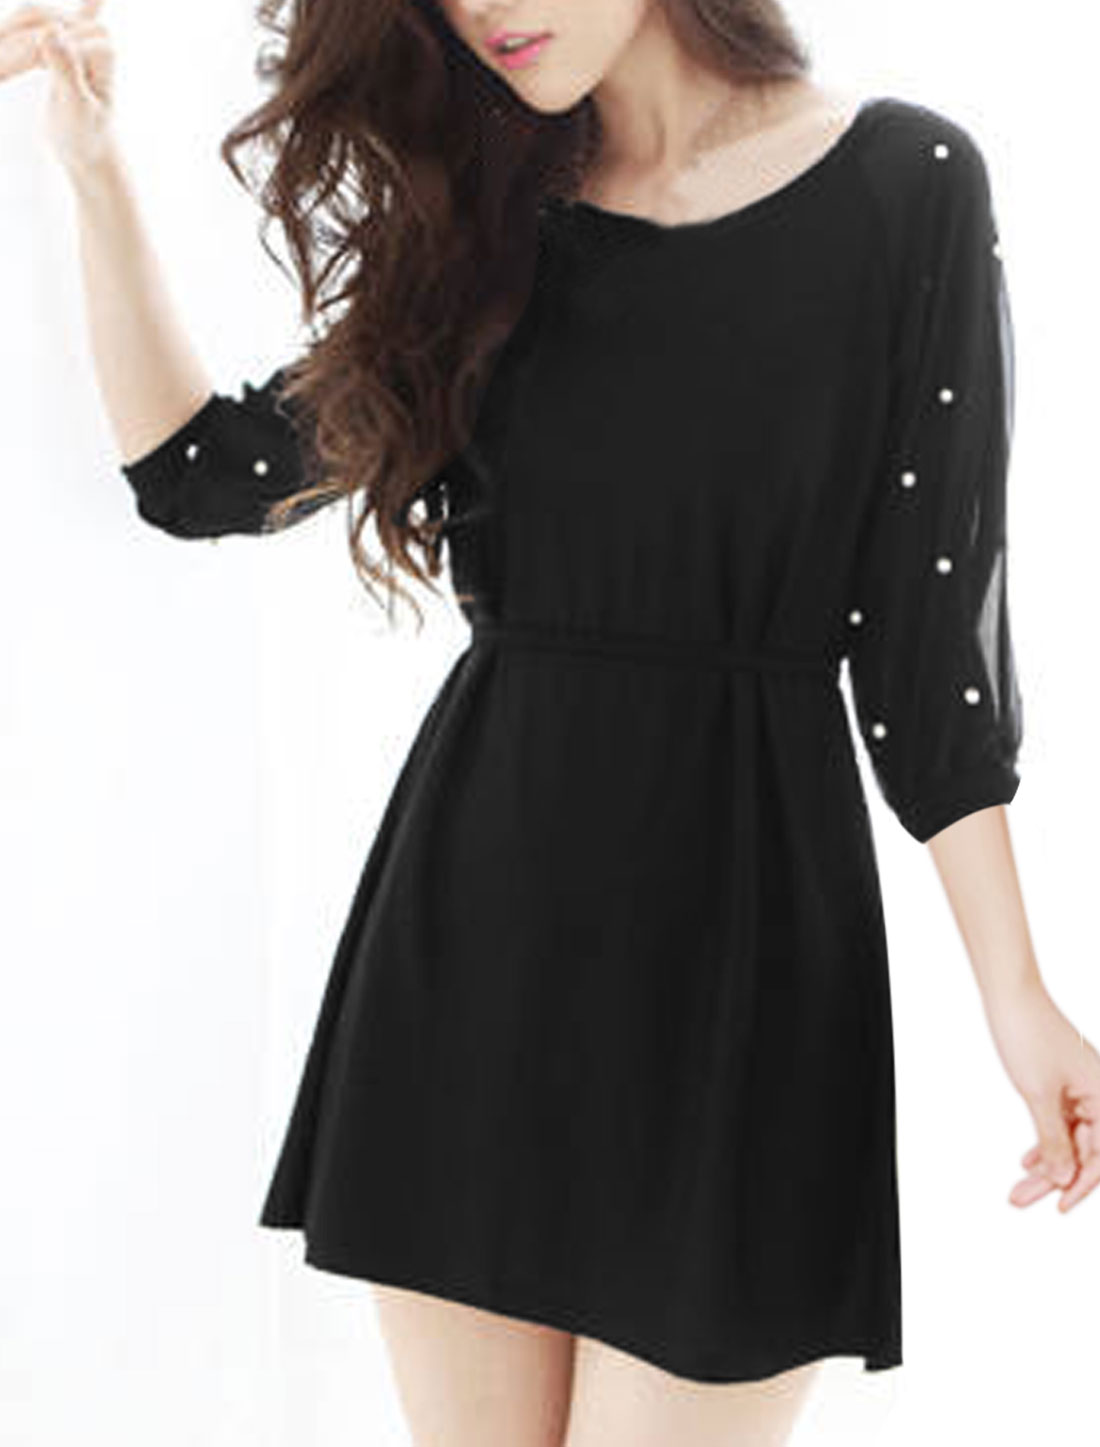 Women Dolman Sleeves Chiffon Panel Beads Decor Tunic Dress Black S